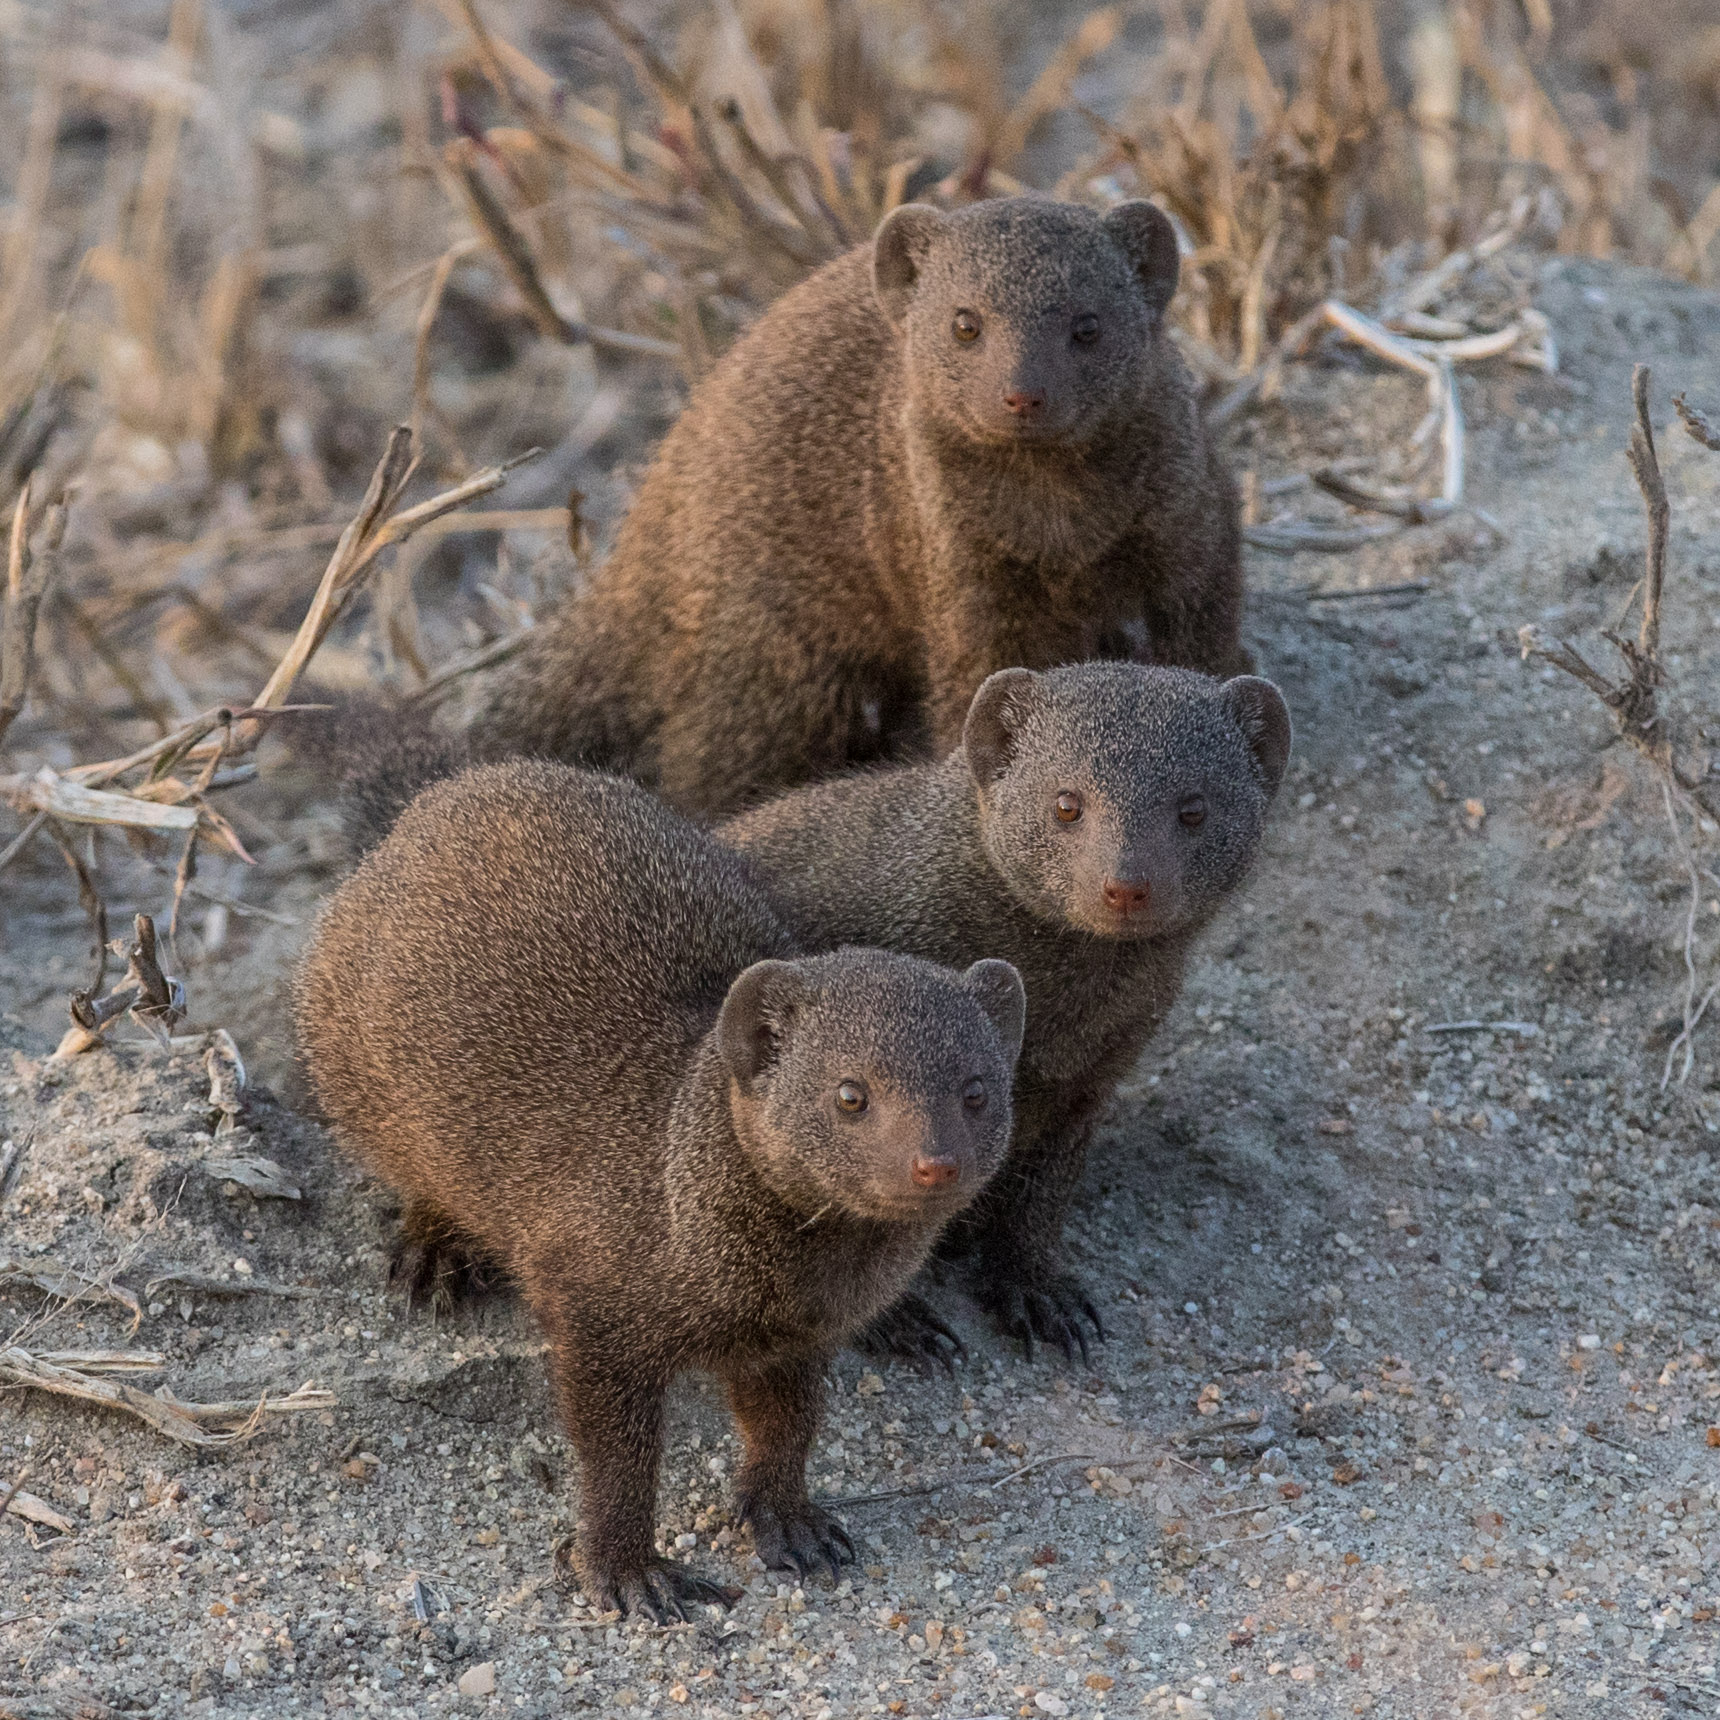 Three inquisitive dwarf mongooses investigate their surroundings together..